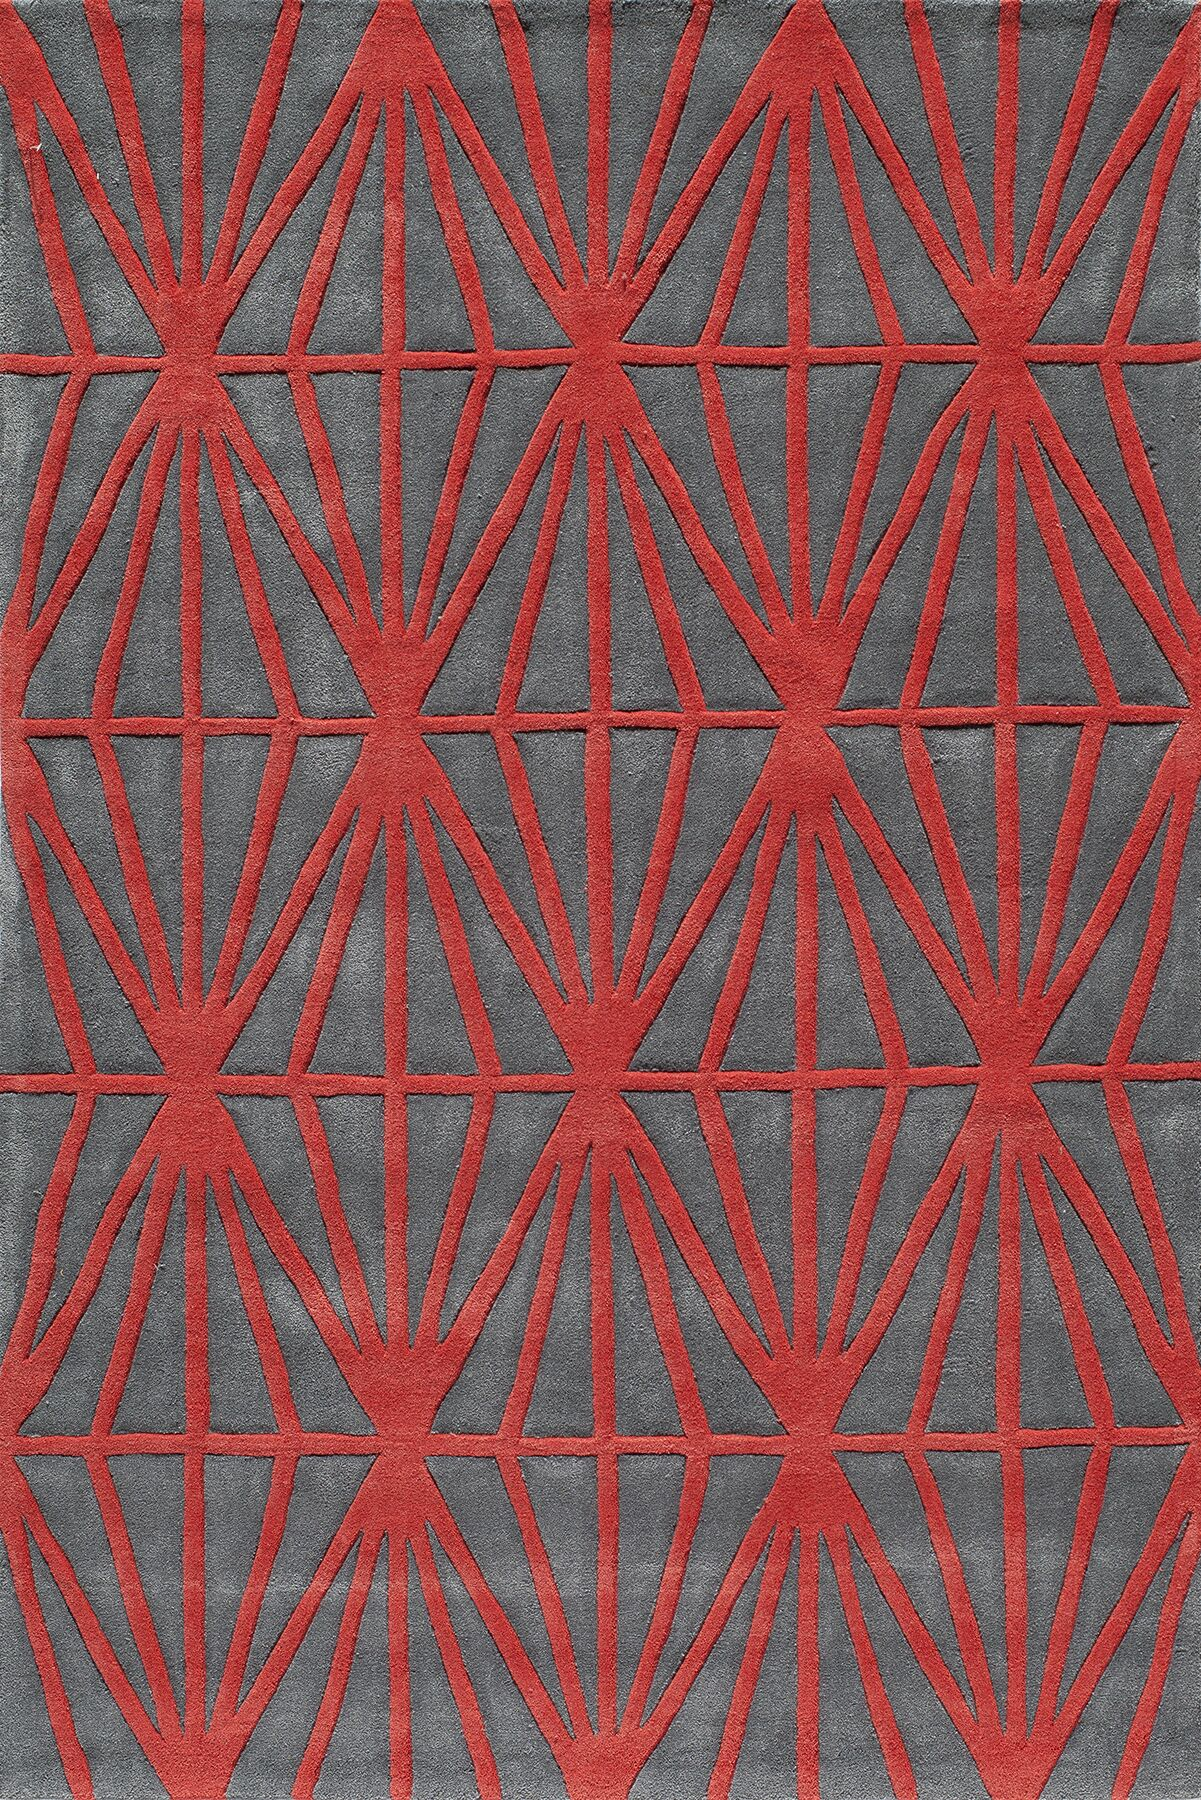 Fowler Hand-Tufted Red Tufted Rug Rug Size: Rectangle 3'6